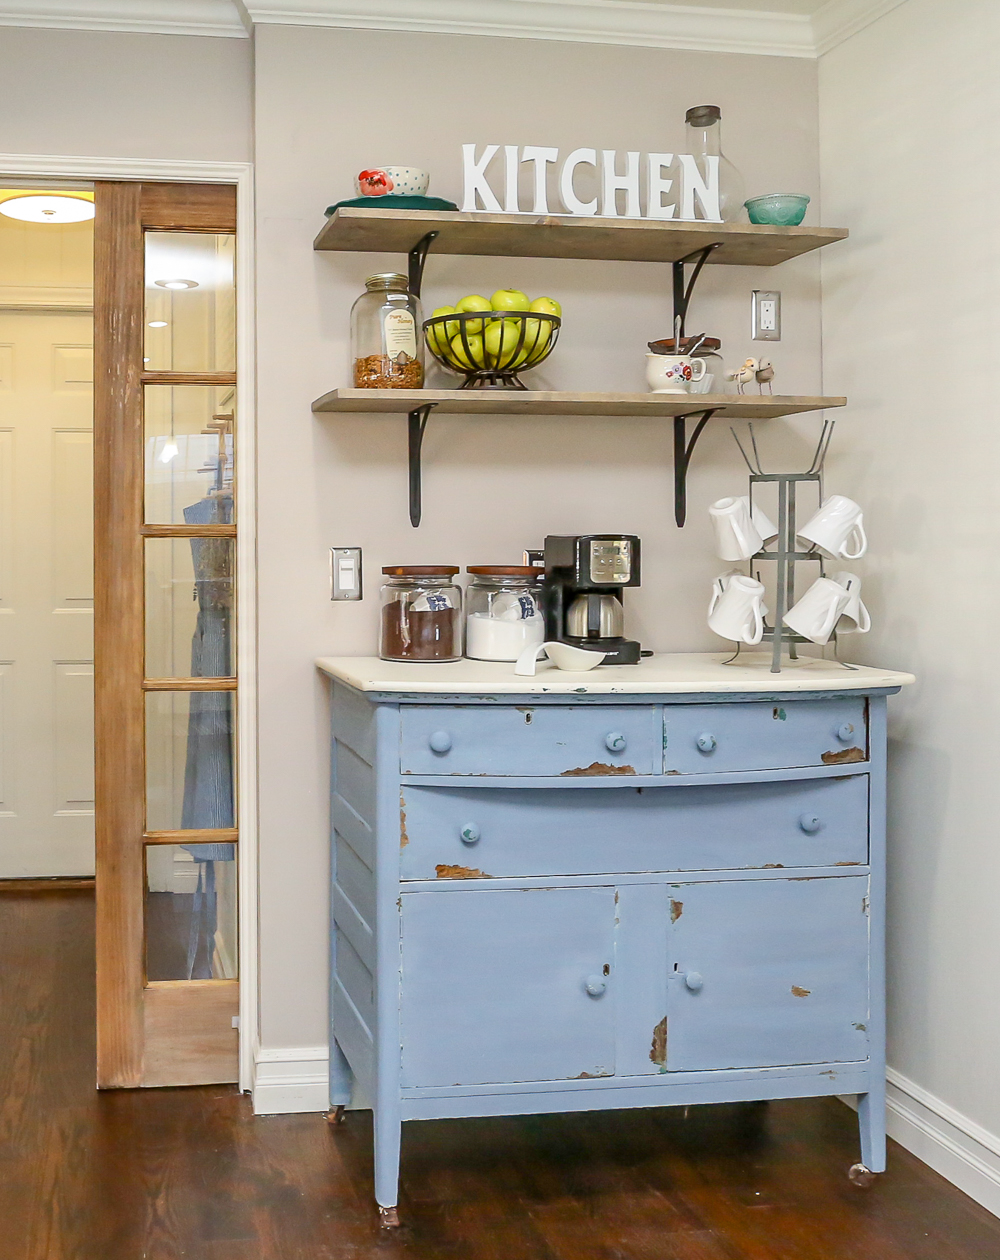 How to Build a Farmhouse Coffee Bar  The Weathered Fox